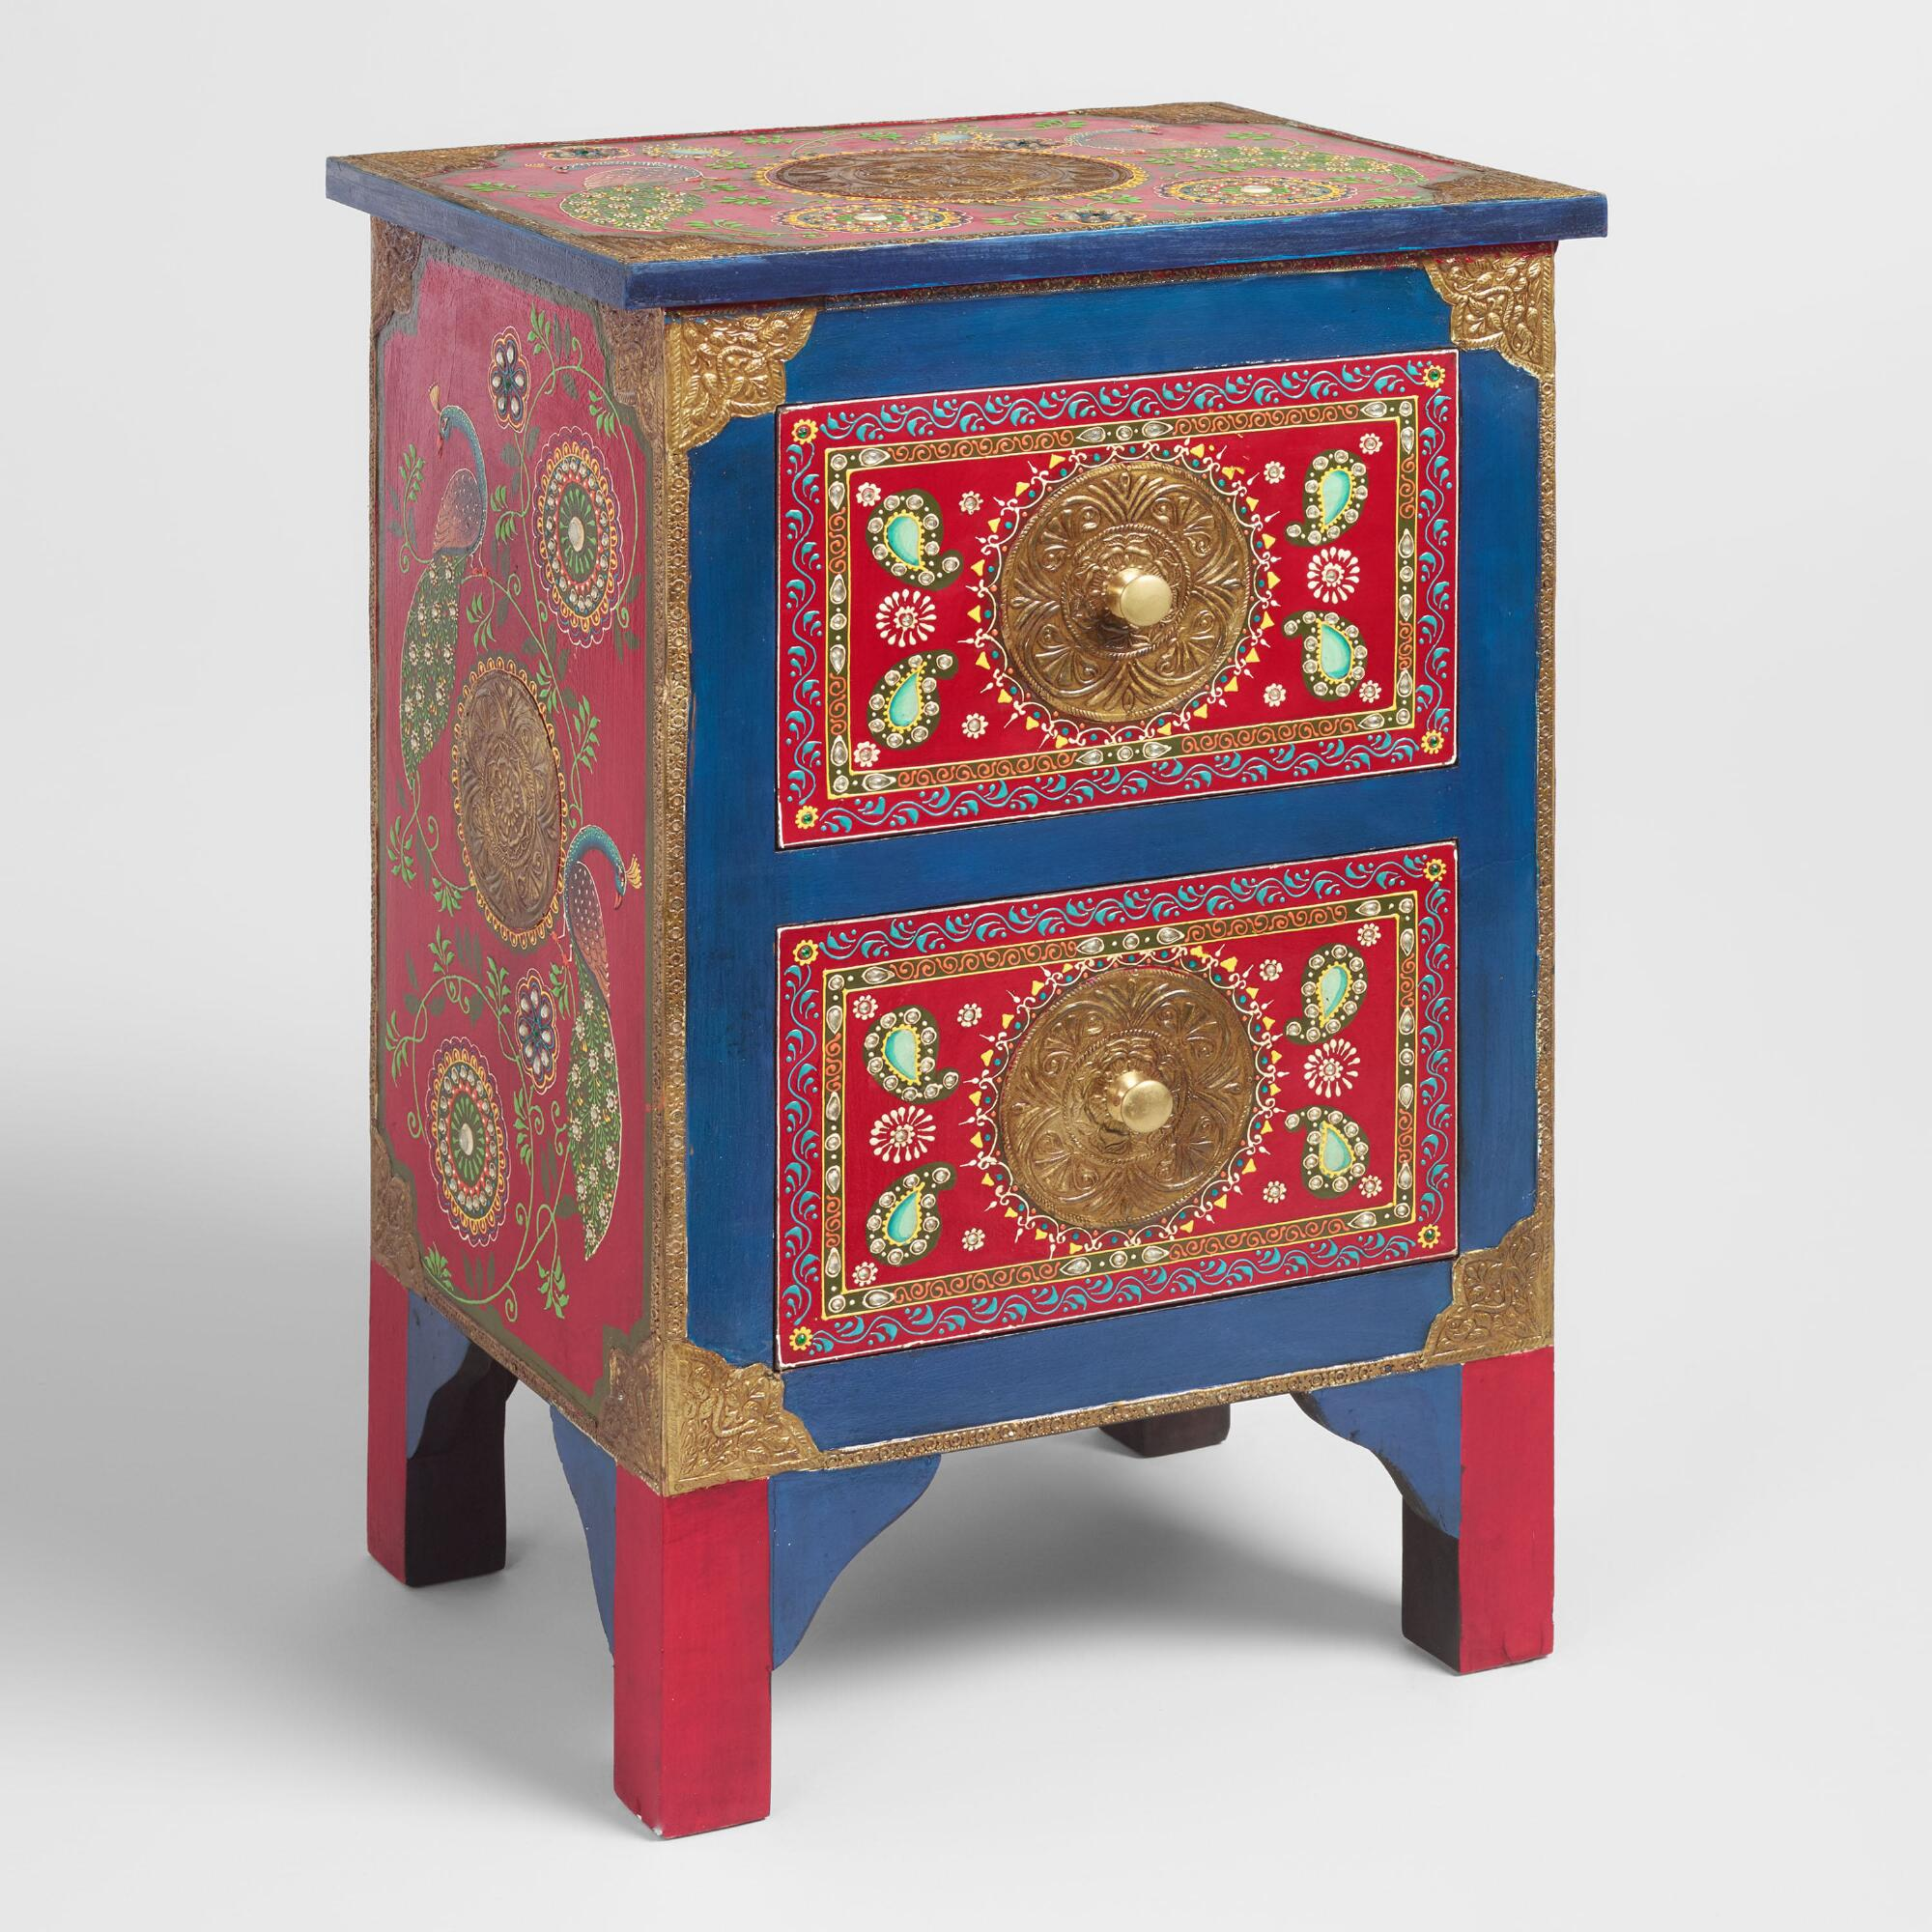 Hand Painted Wood Peacock Storage Cabinet: Blue/Multi by World Market